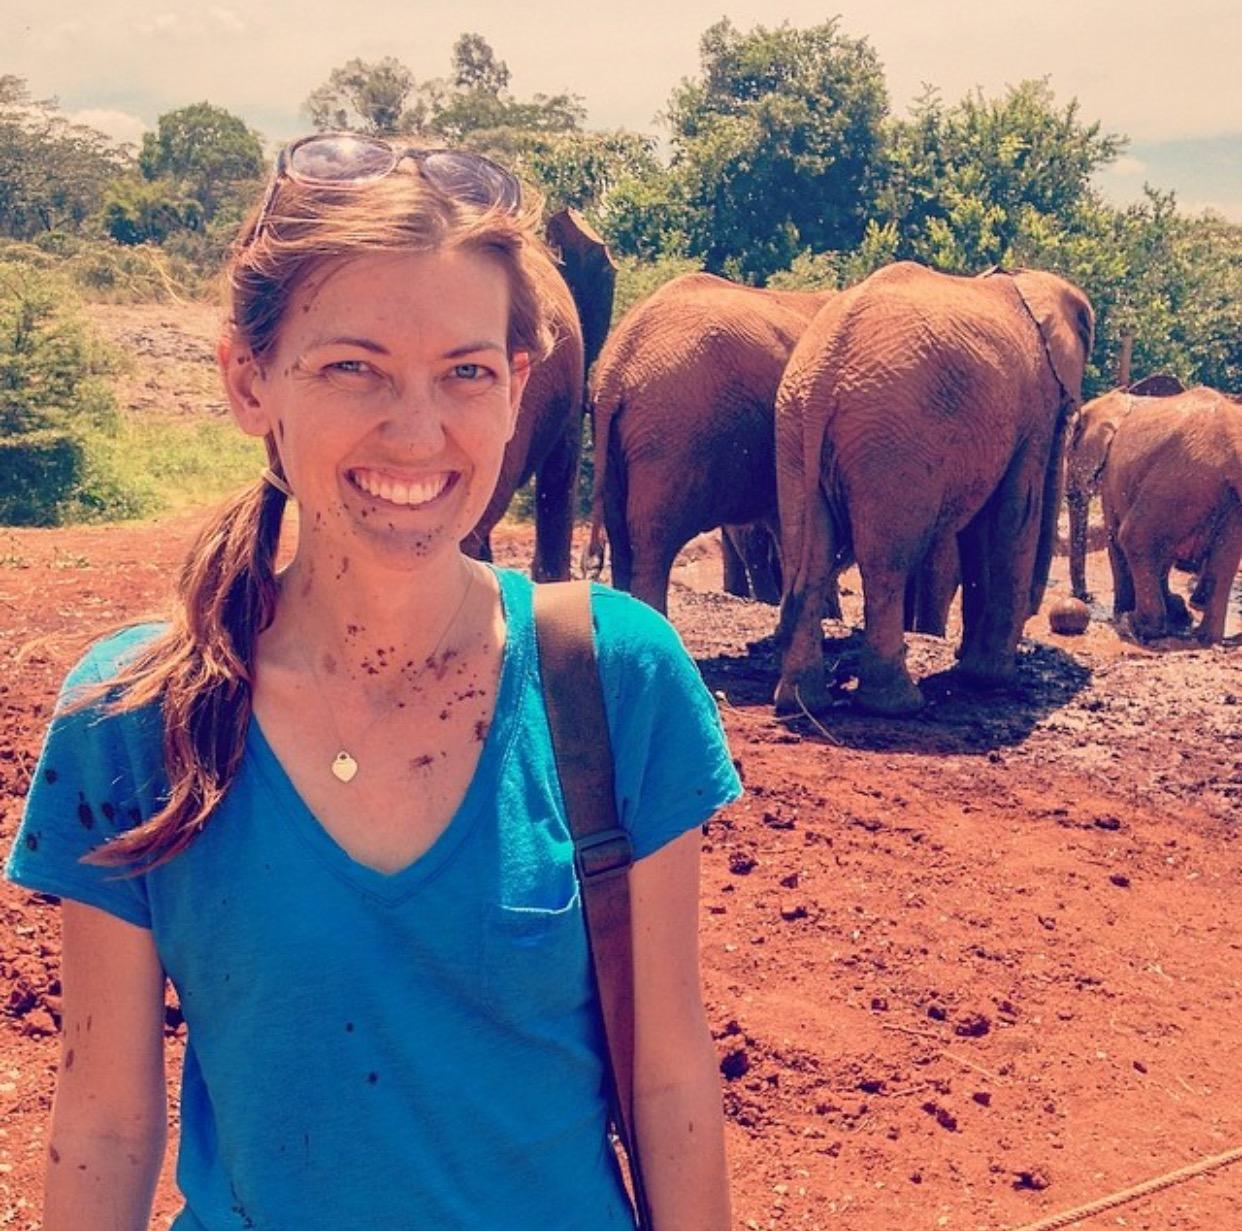 """David Sheldrick Wildlife Orphan Trust. """"They tell me getting sprayed from head to toe with mud by the orphaned baby elephants is a blessing,"""" Shannon says. """"I think they were just trying to make me feel better!""""  Photo by Shannon O'Donnell ."""